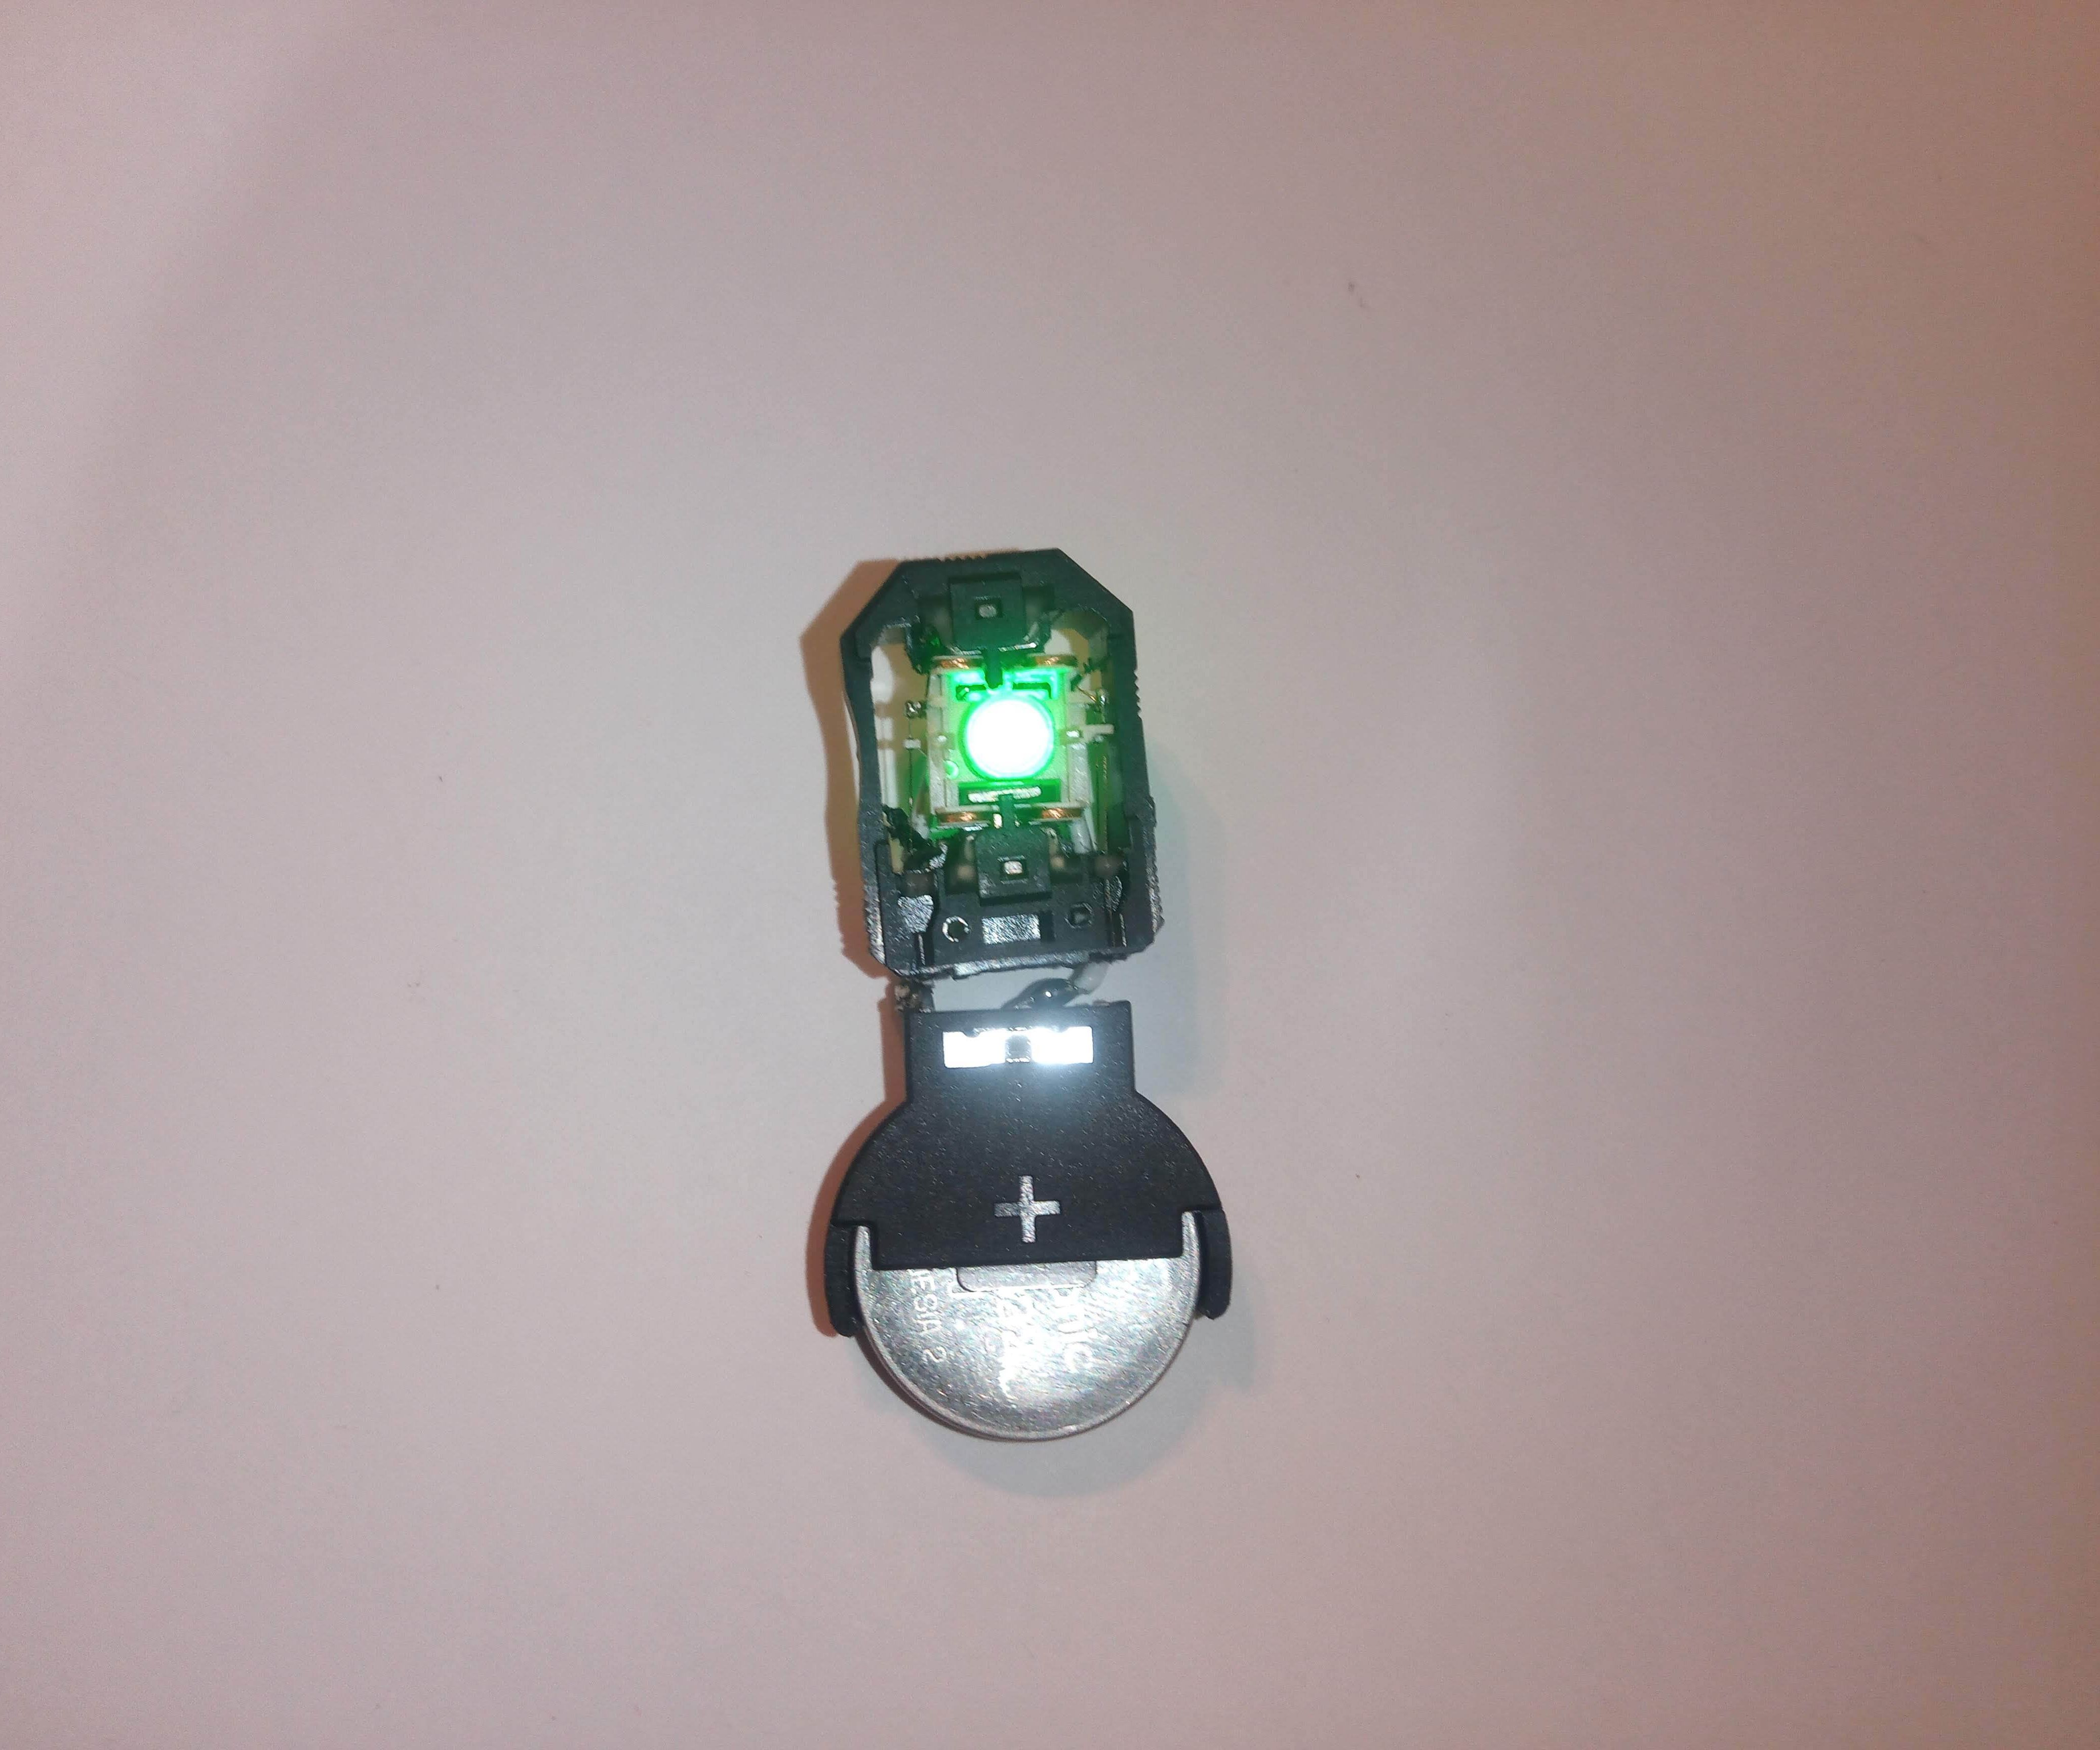 LED Pendant From an Old Optical Drive